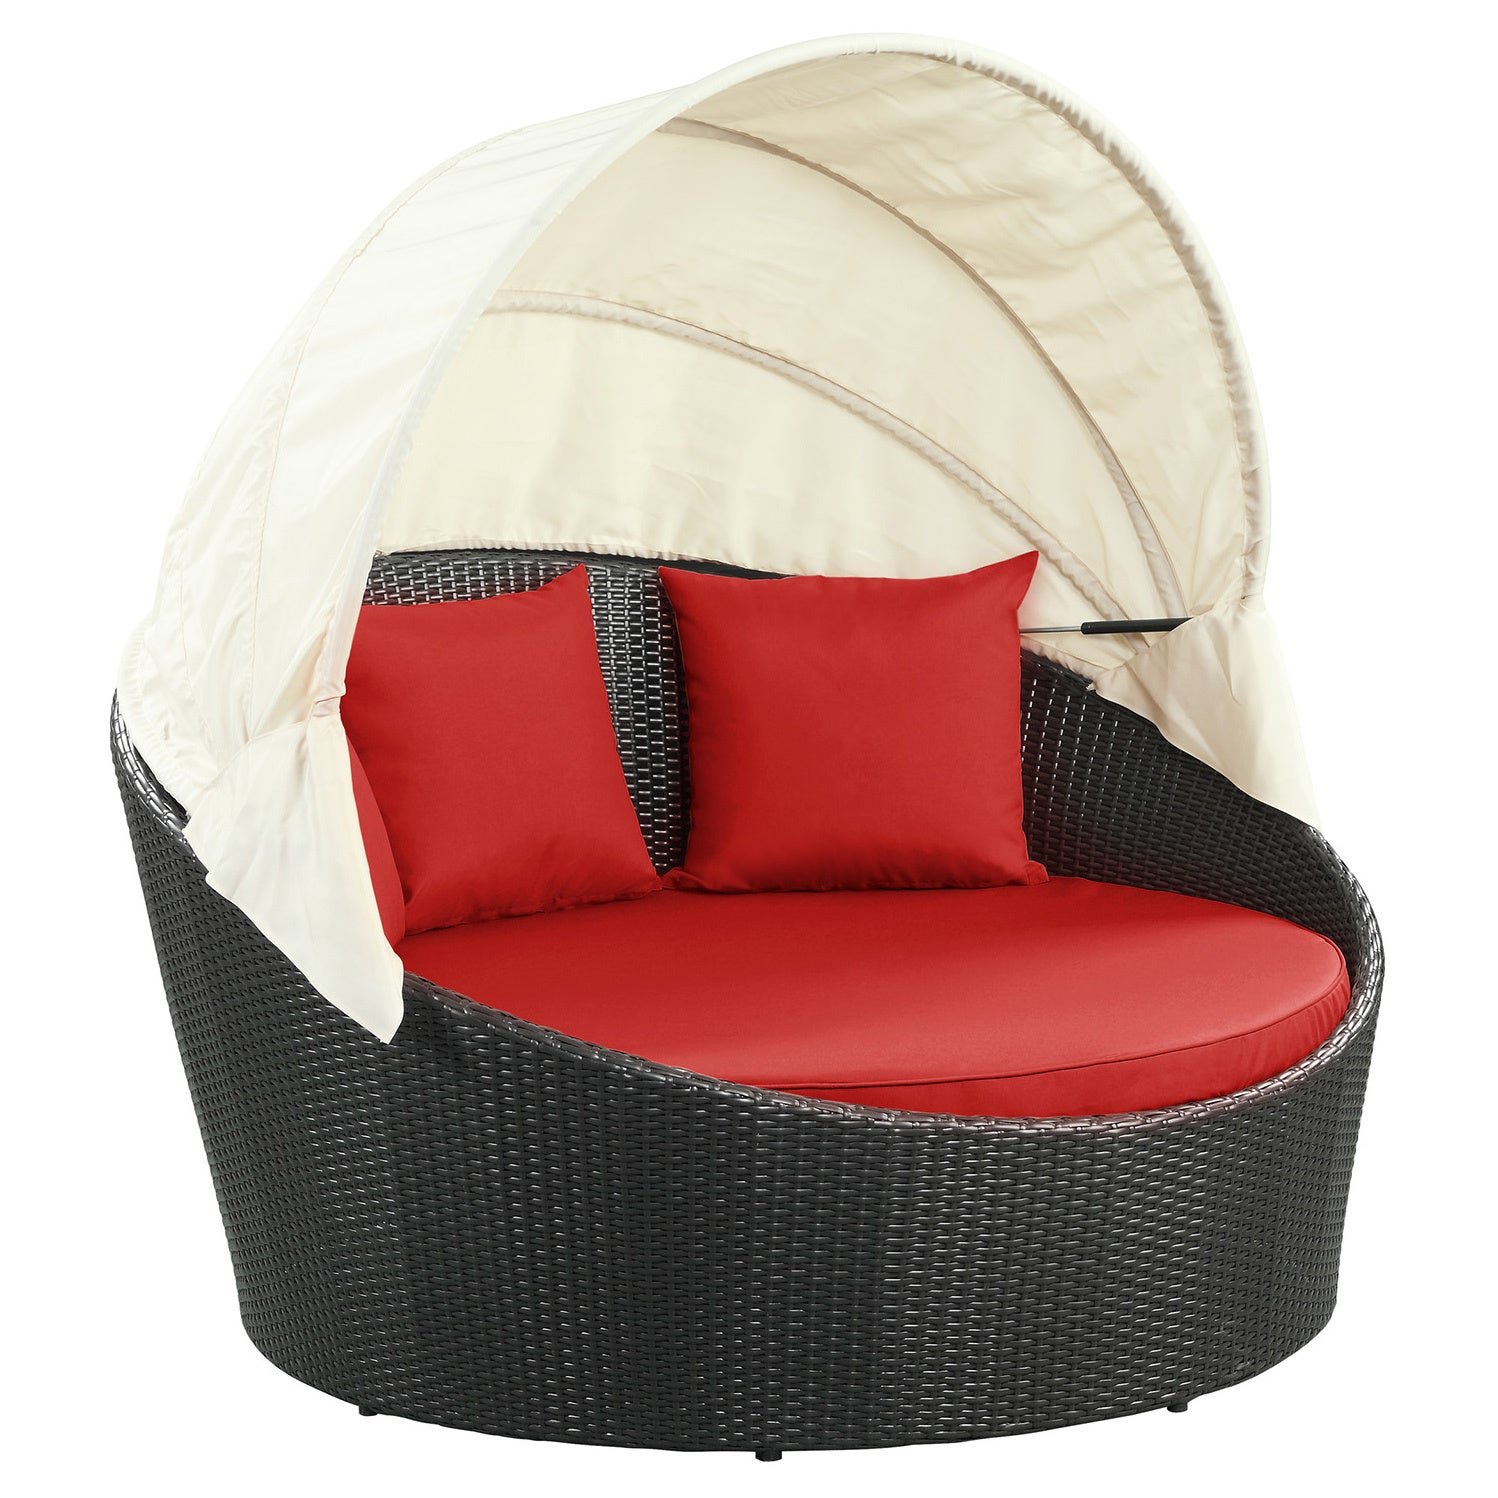 Siesta Outdoor Rattan Canopy Bed   Free Shipping Today   Overstock    14228663